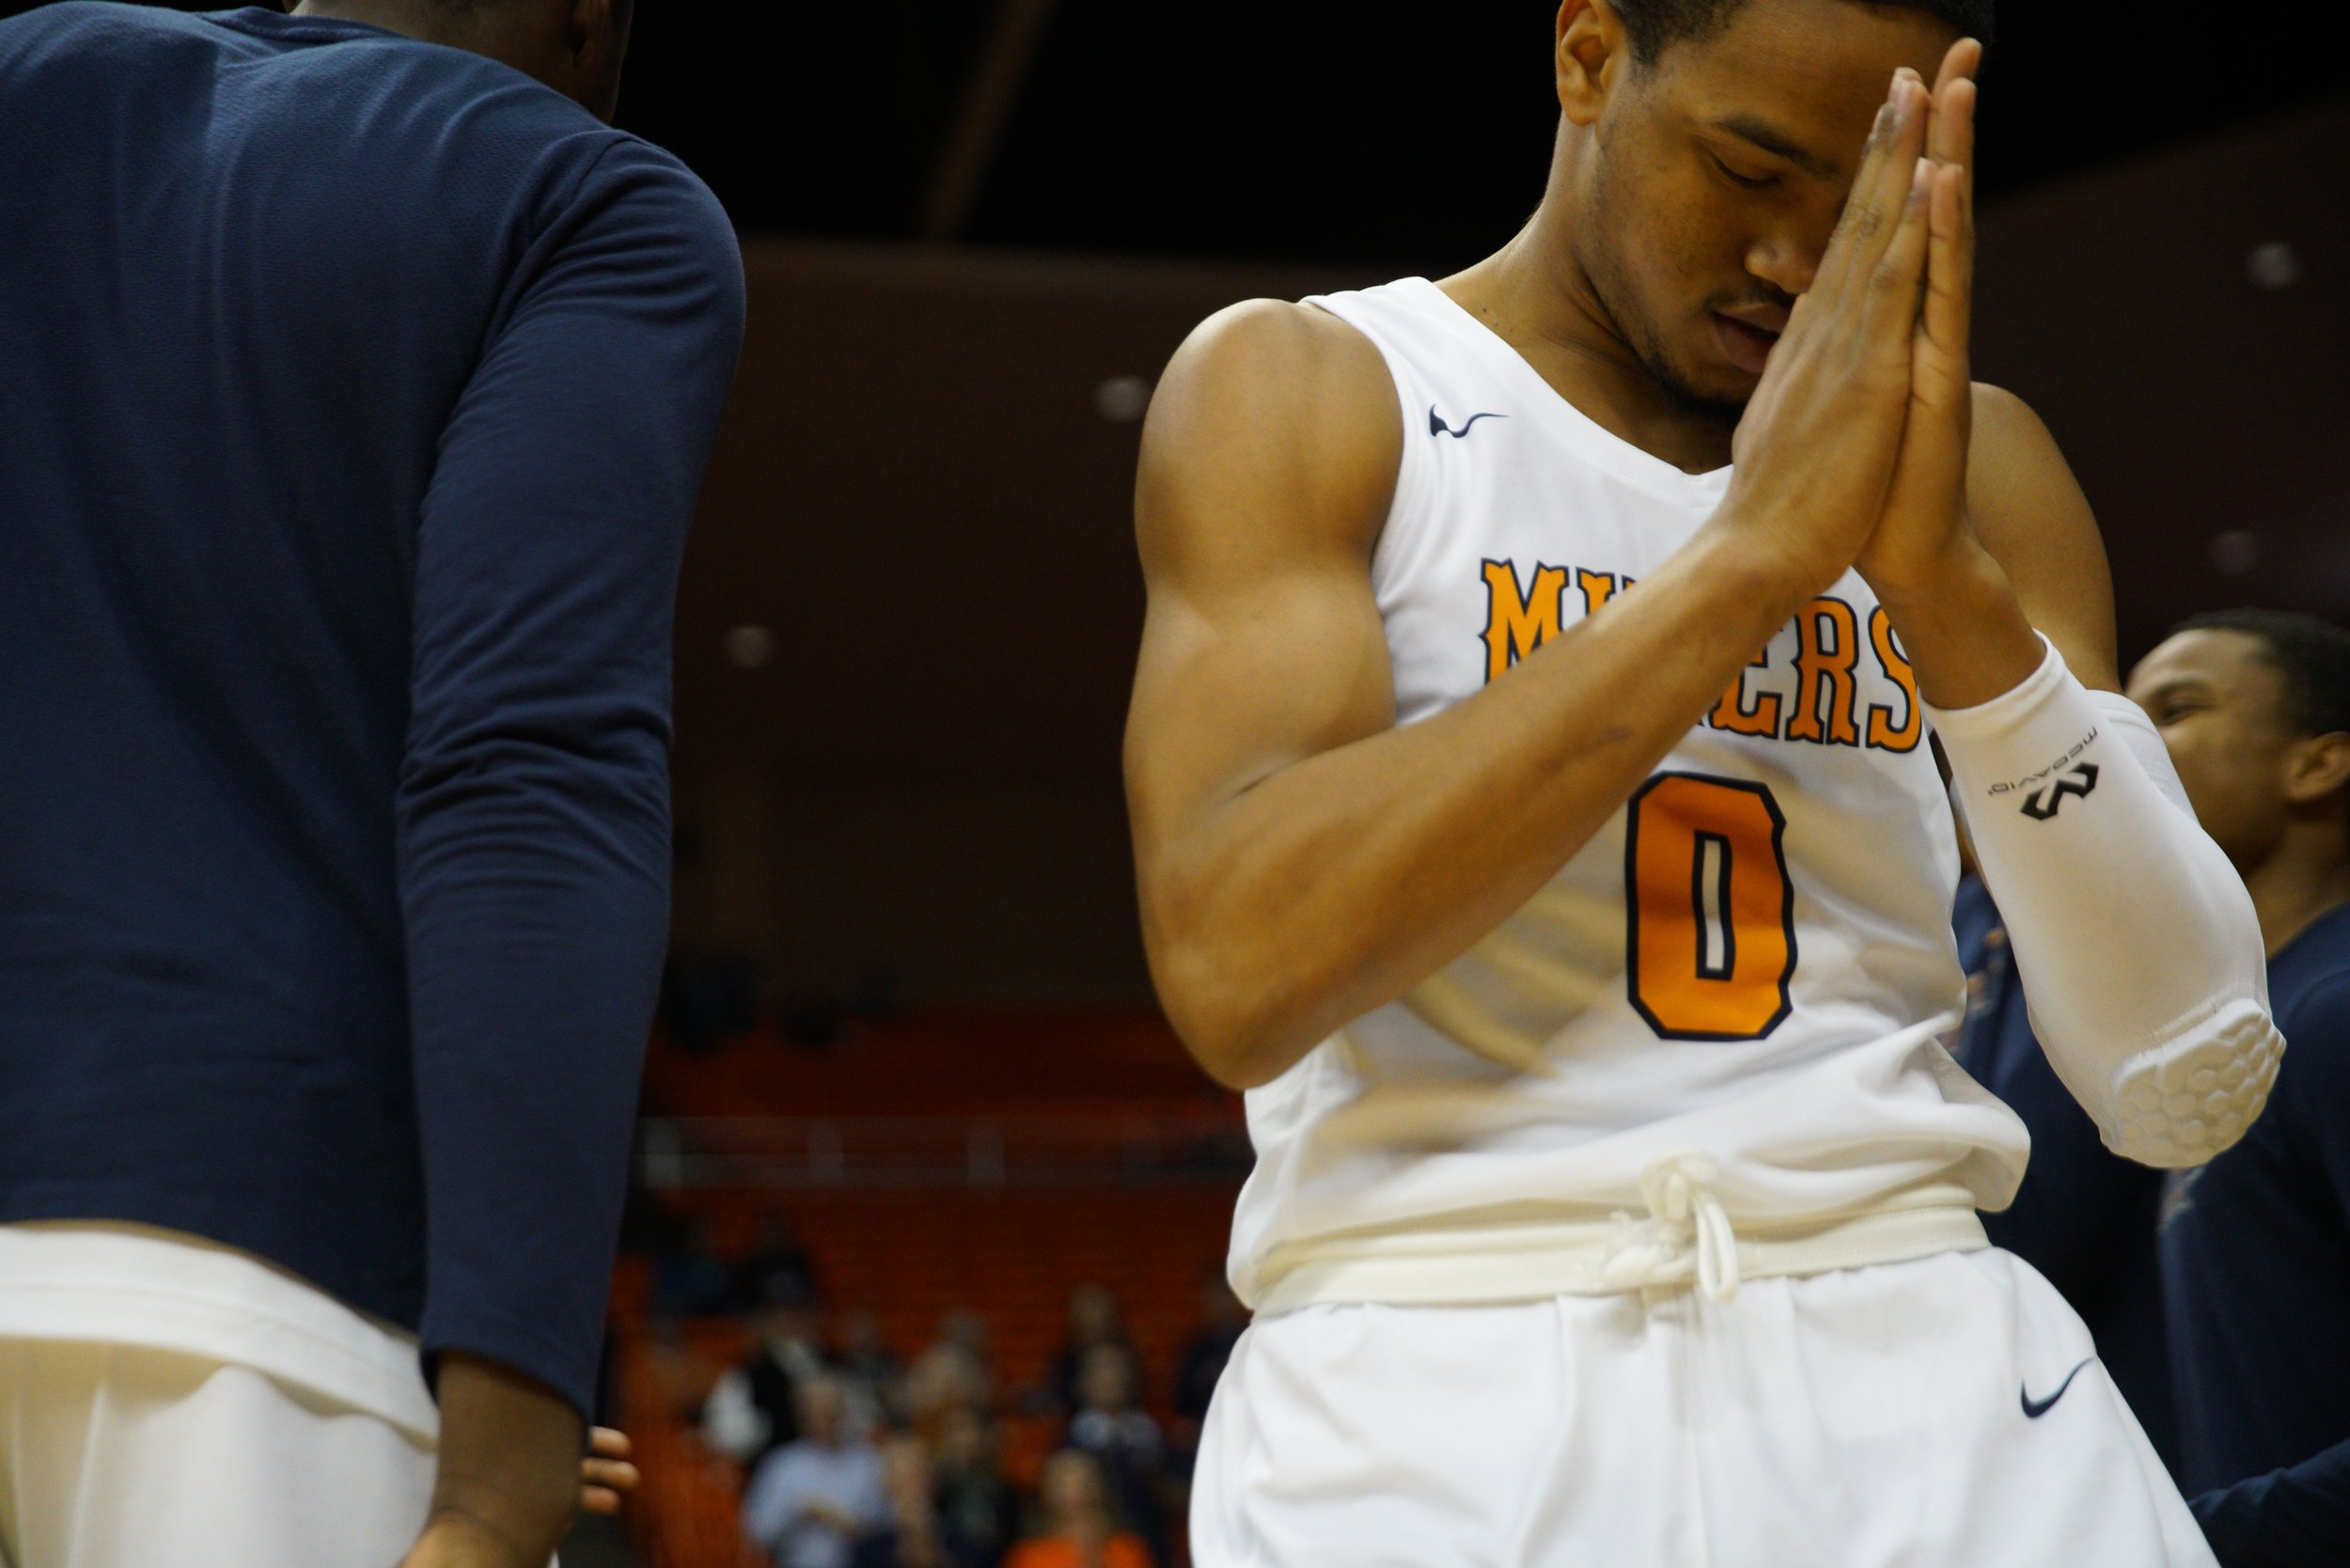 EL PASO, TX - DECEMBER 21: during the a college basketball game between Norfolk State Spartans and UTEP Miners on December 21, 2018, at the Don Haskin Center in El Paso, TX. (Photo by Jorge Salgado/Icon Sportswire)